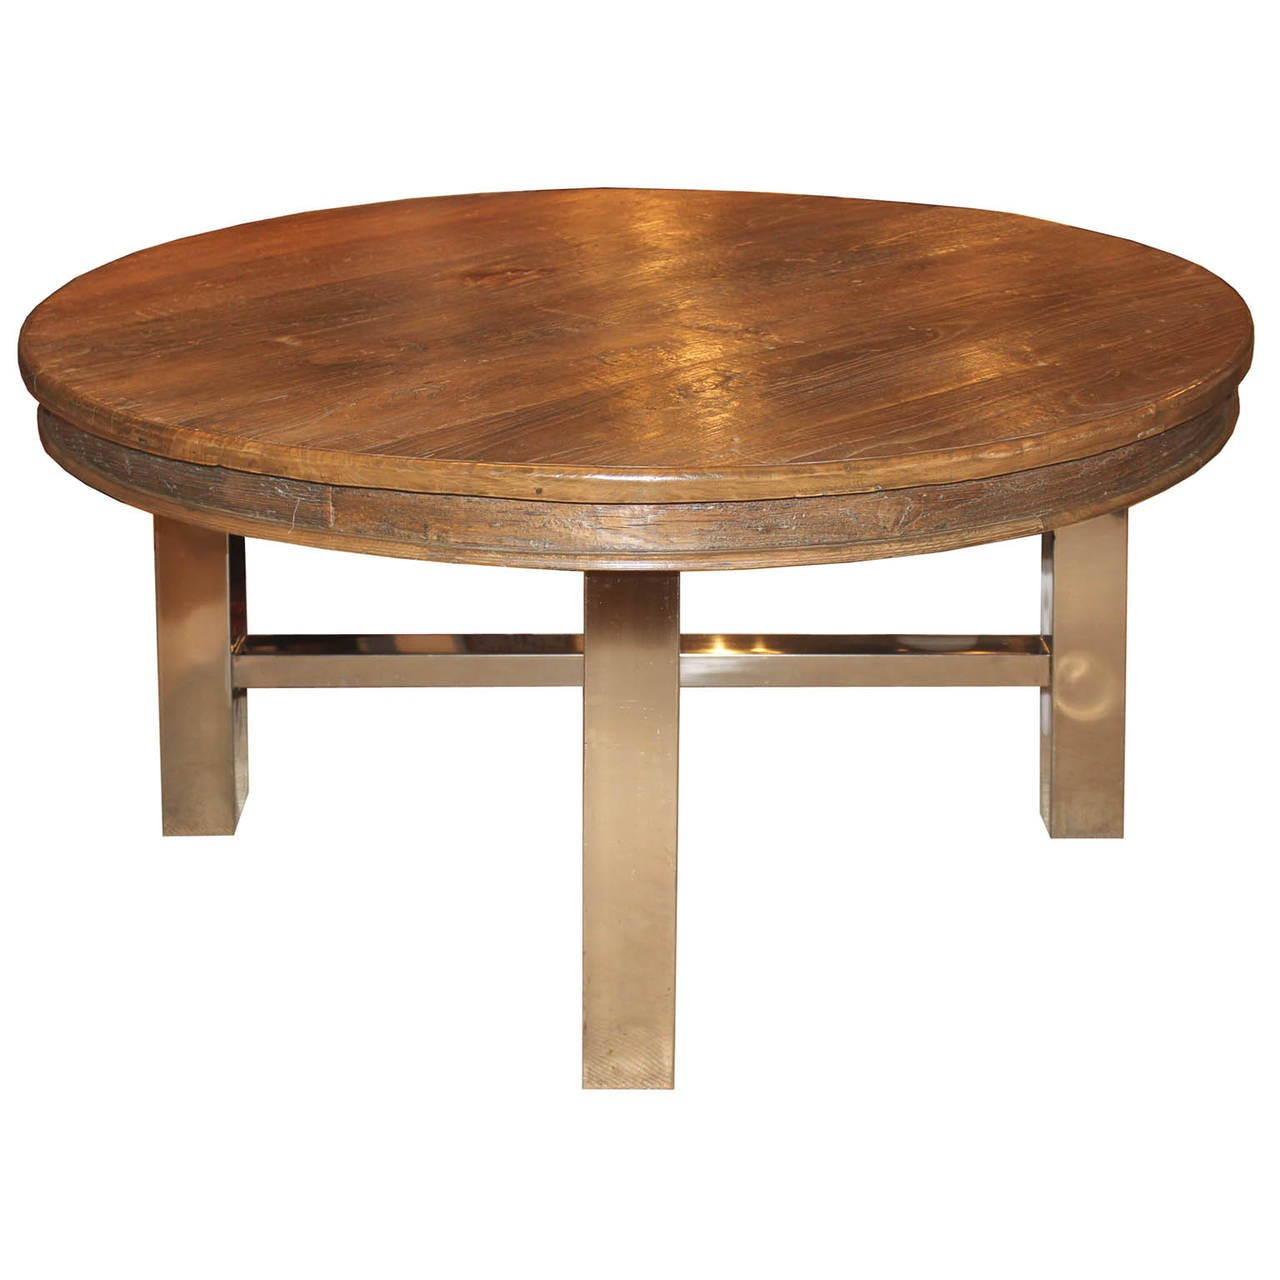 Elm dining table for sale at 1stdibs - Archives departementales 33 tables decennales ...